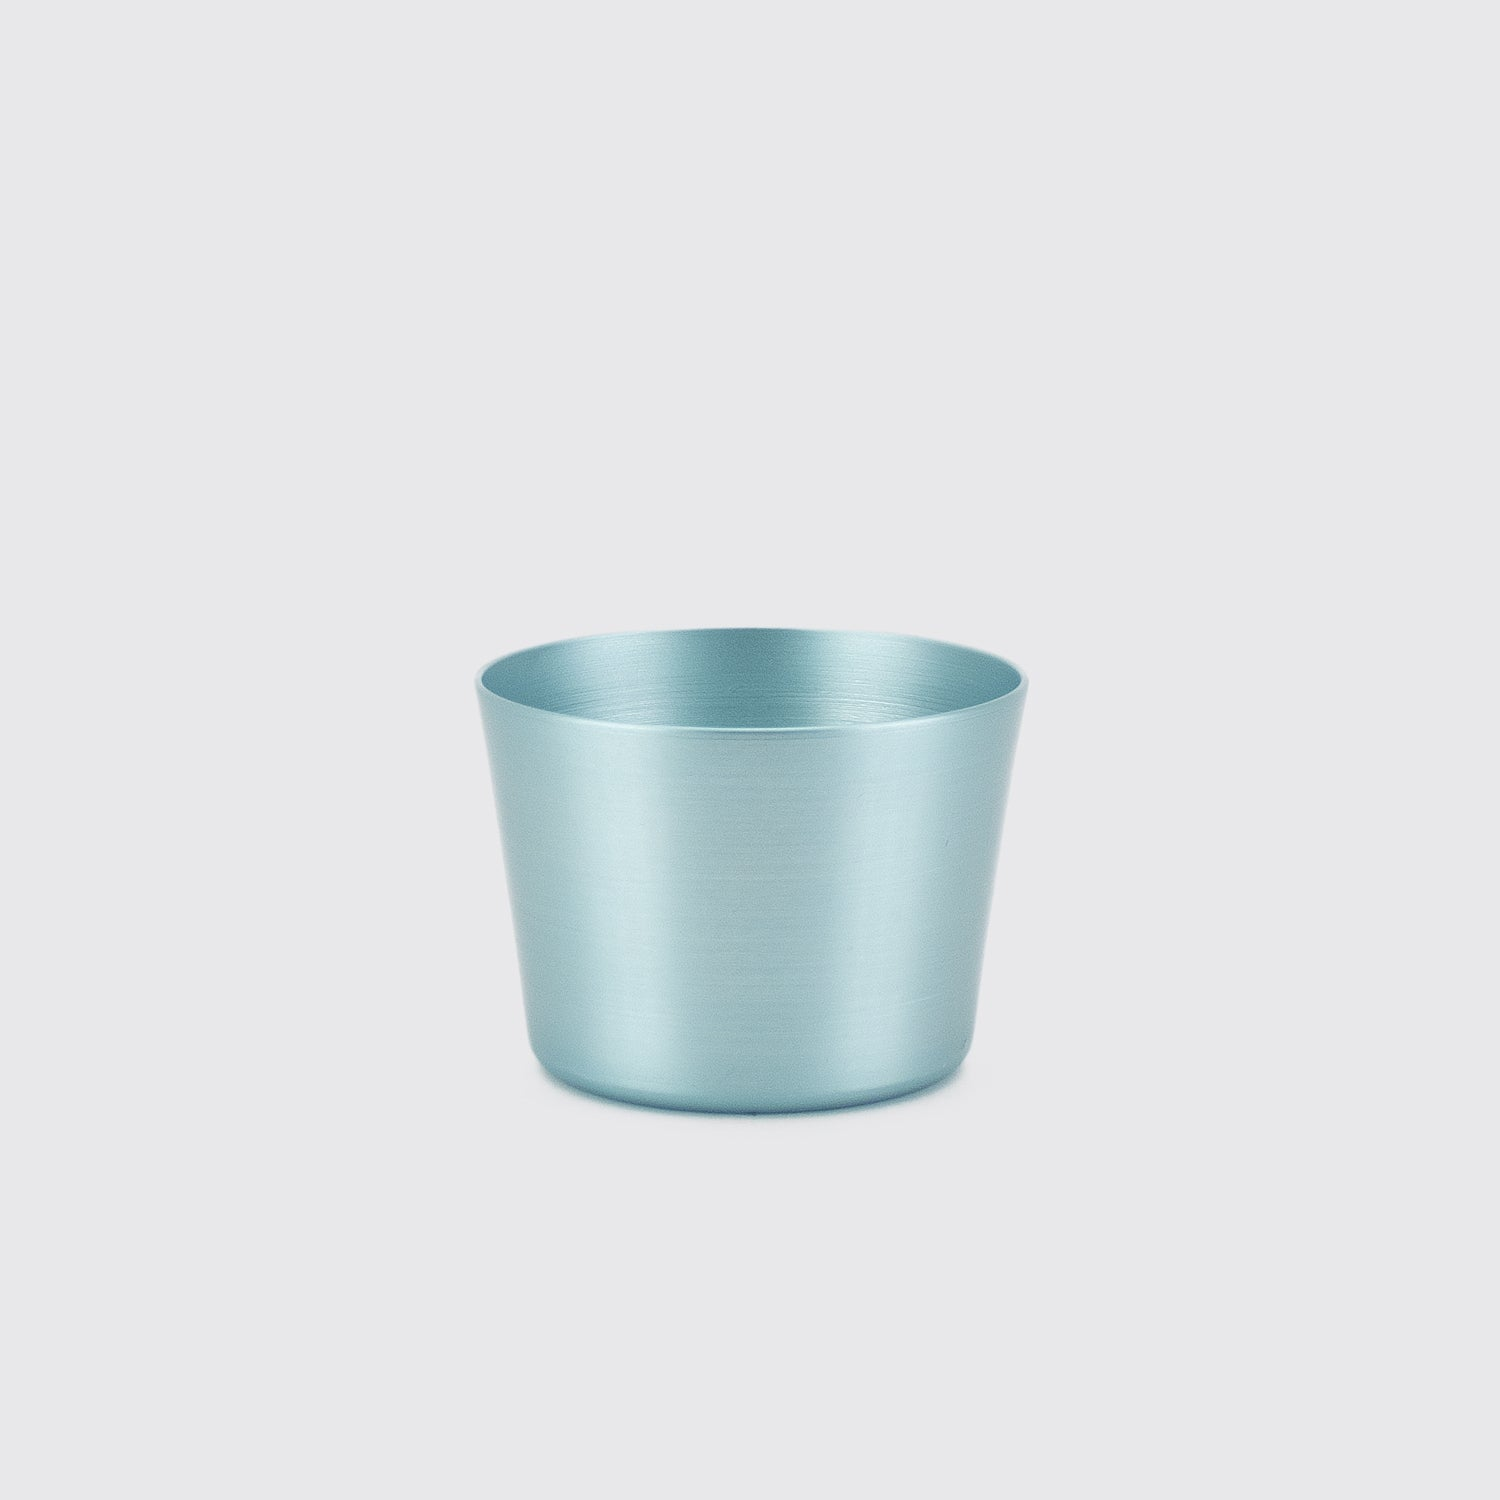 100% Re-cycled Anodized Aluminum Tumbler - Light Blue